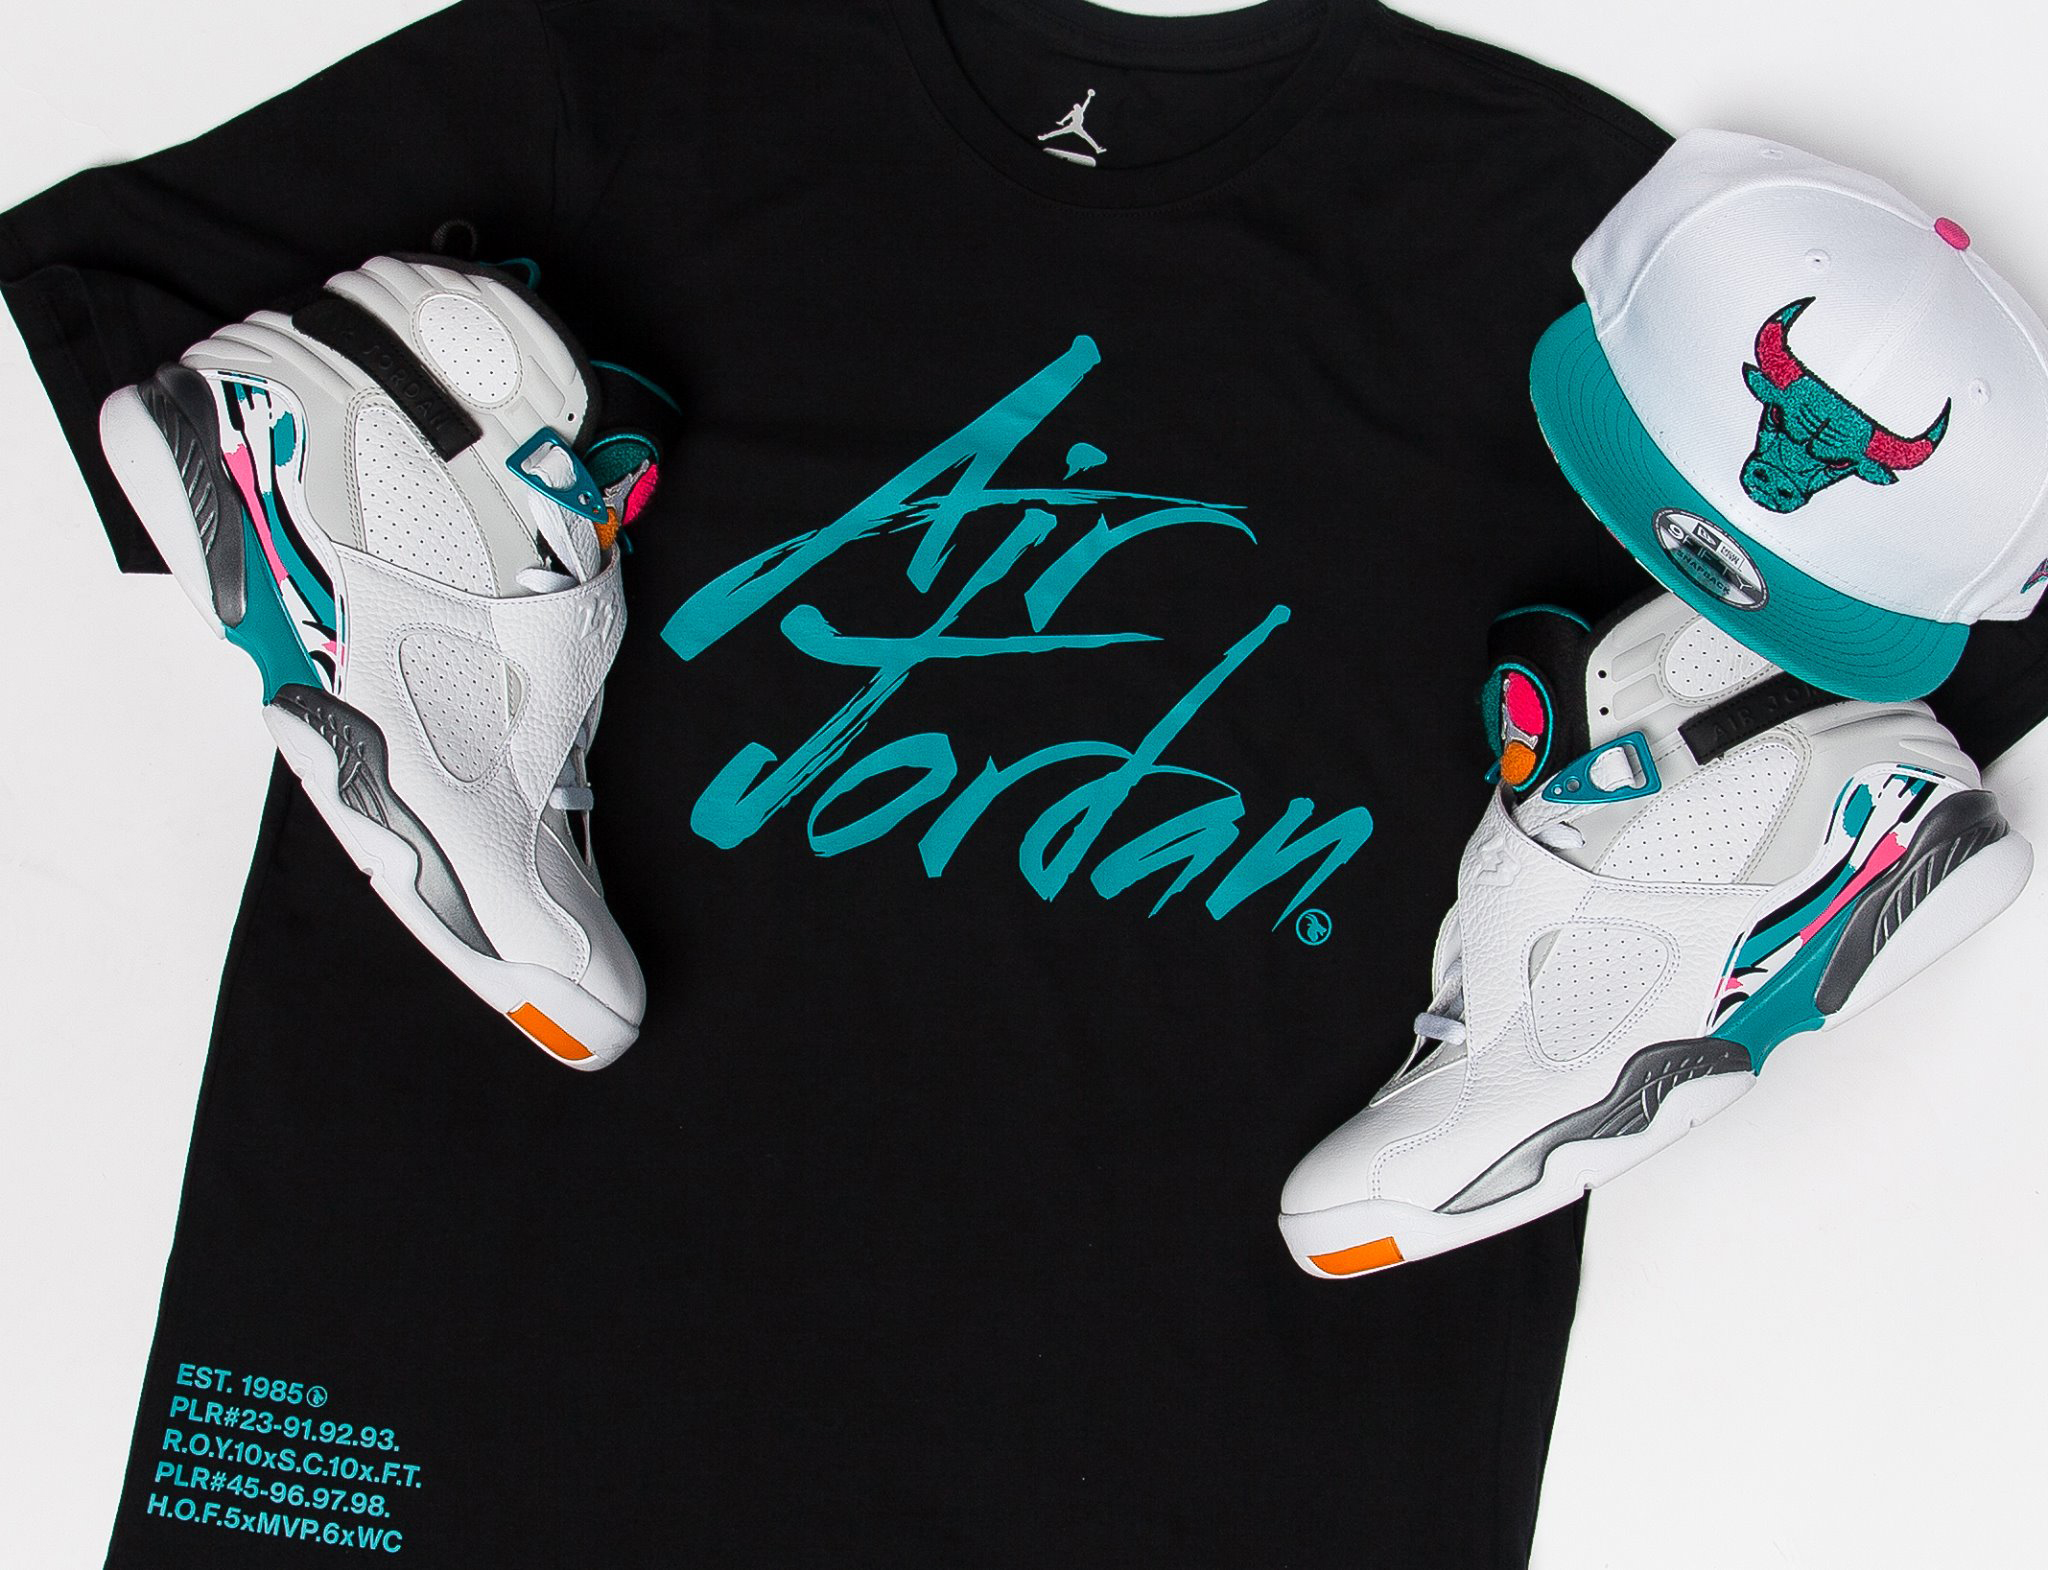 c35c570018d closeout jordan 8 south beach shirt and bulls hat 7a463 ae7cd